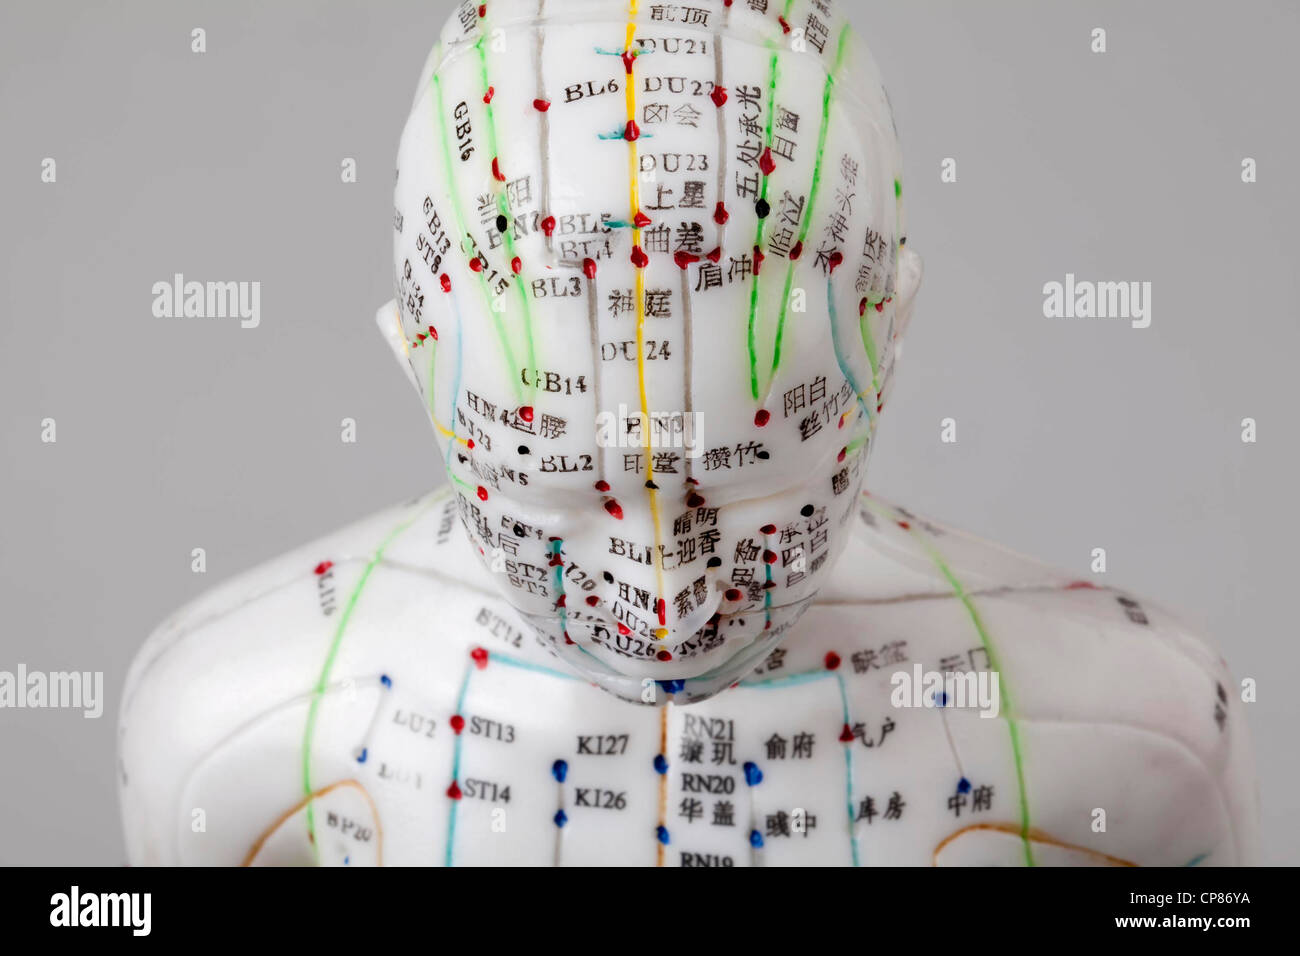 A female model with marked acupuncture points, Chinese characters on